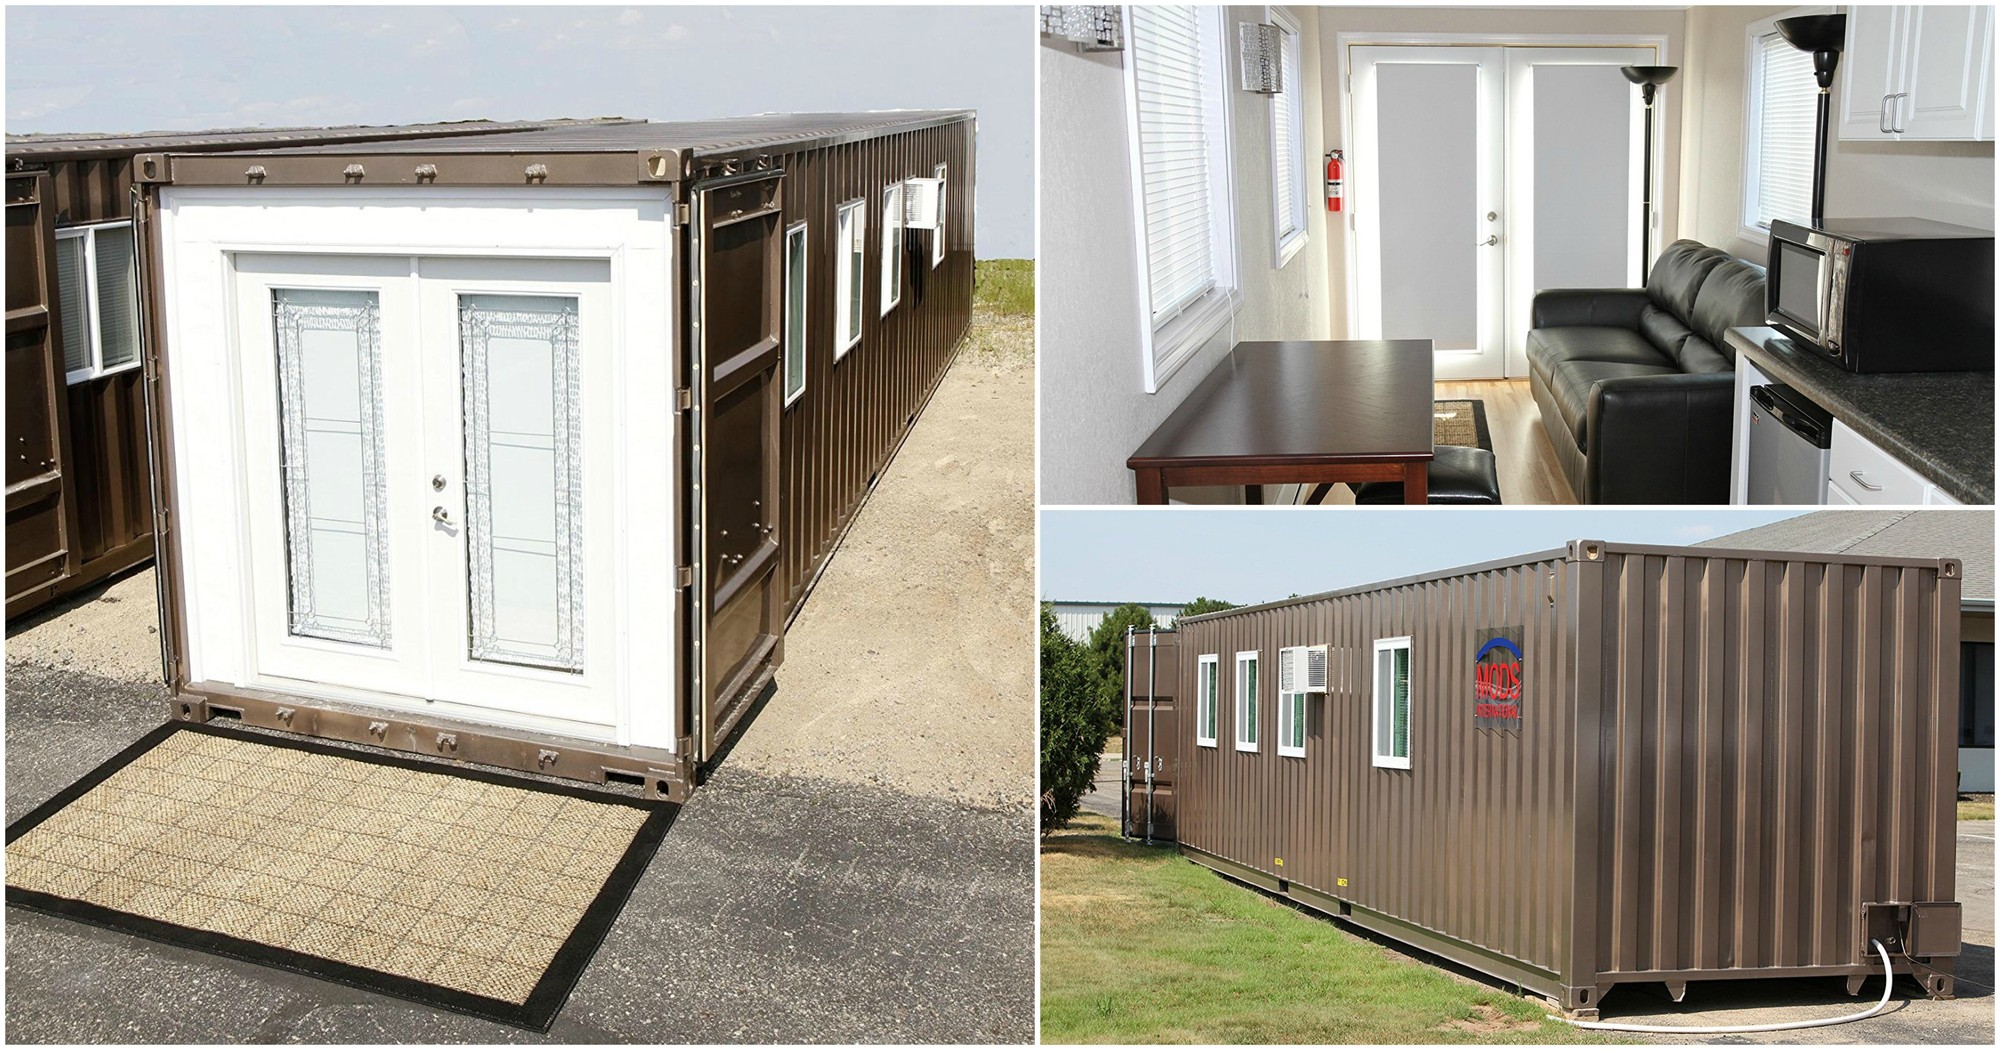 Shipping-container Tiny House